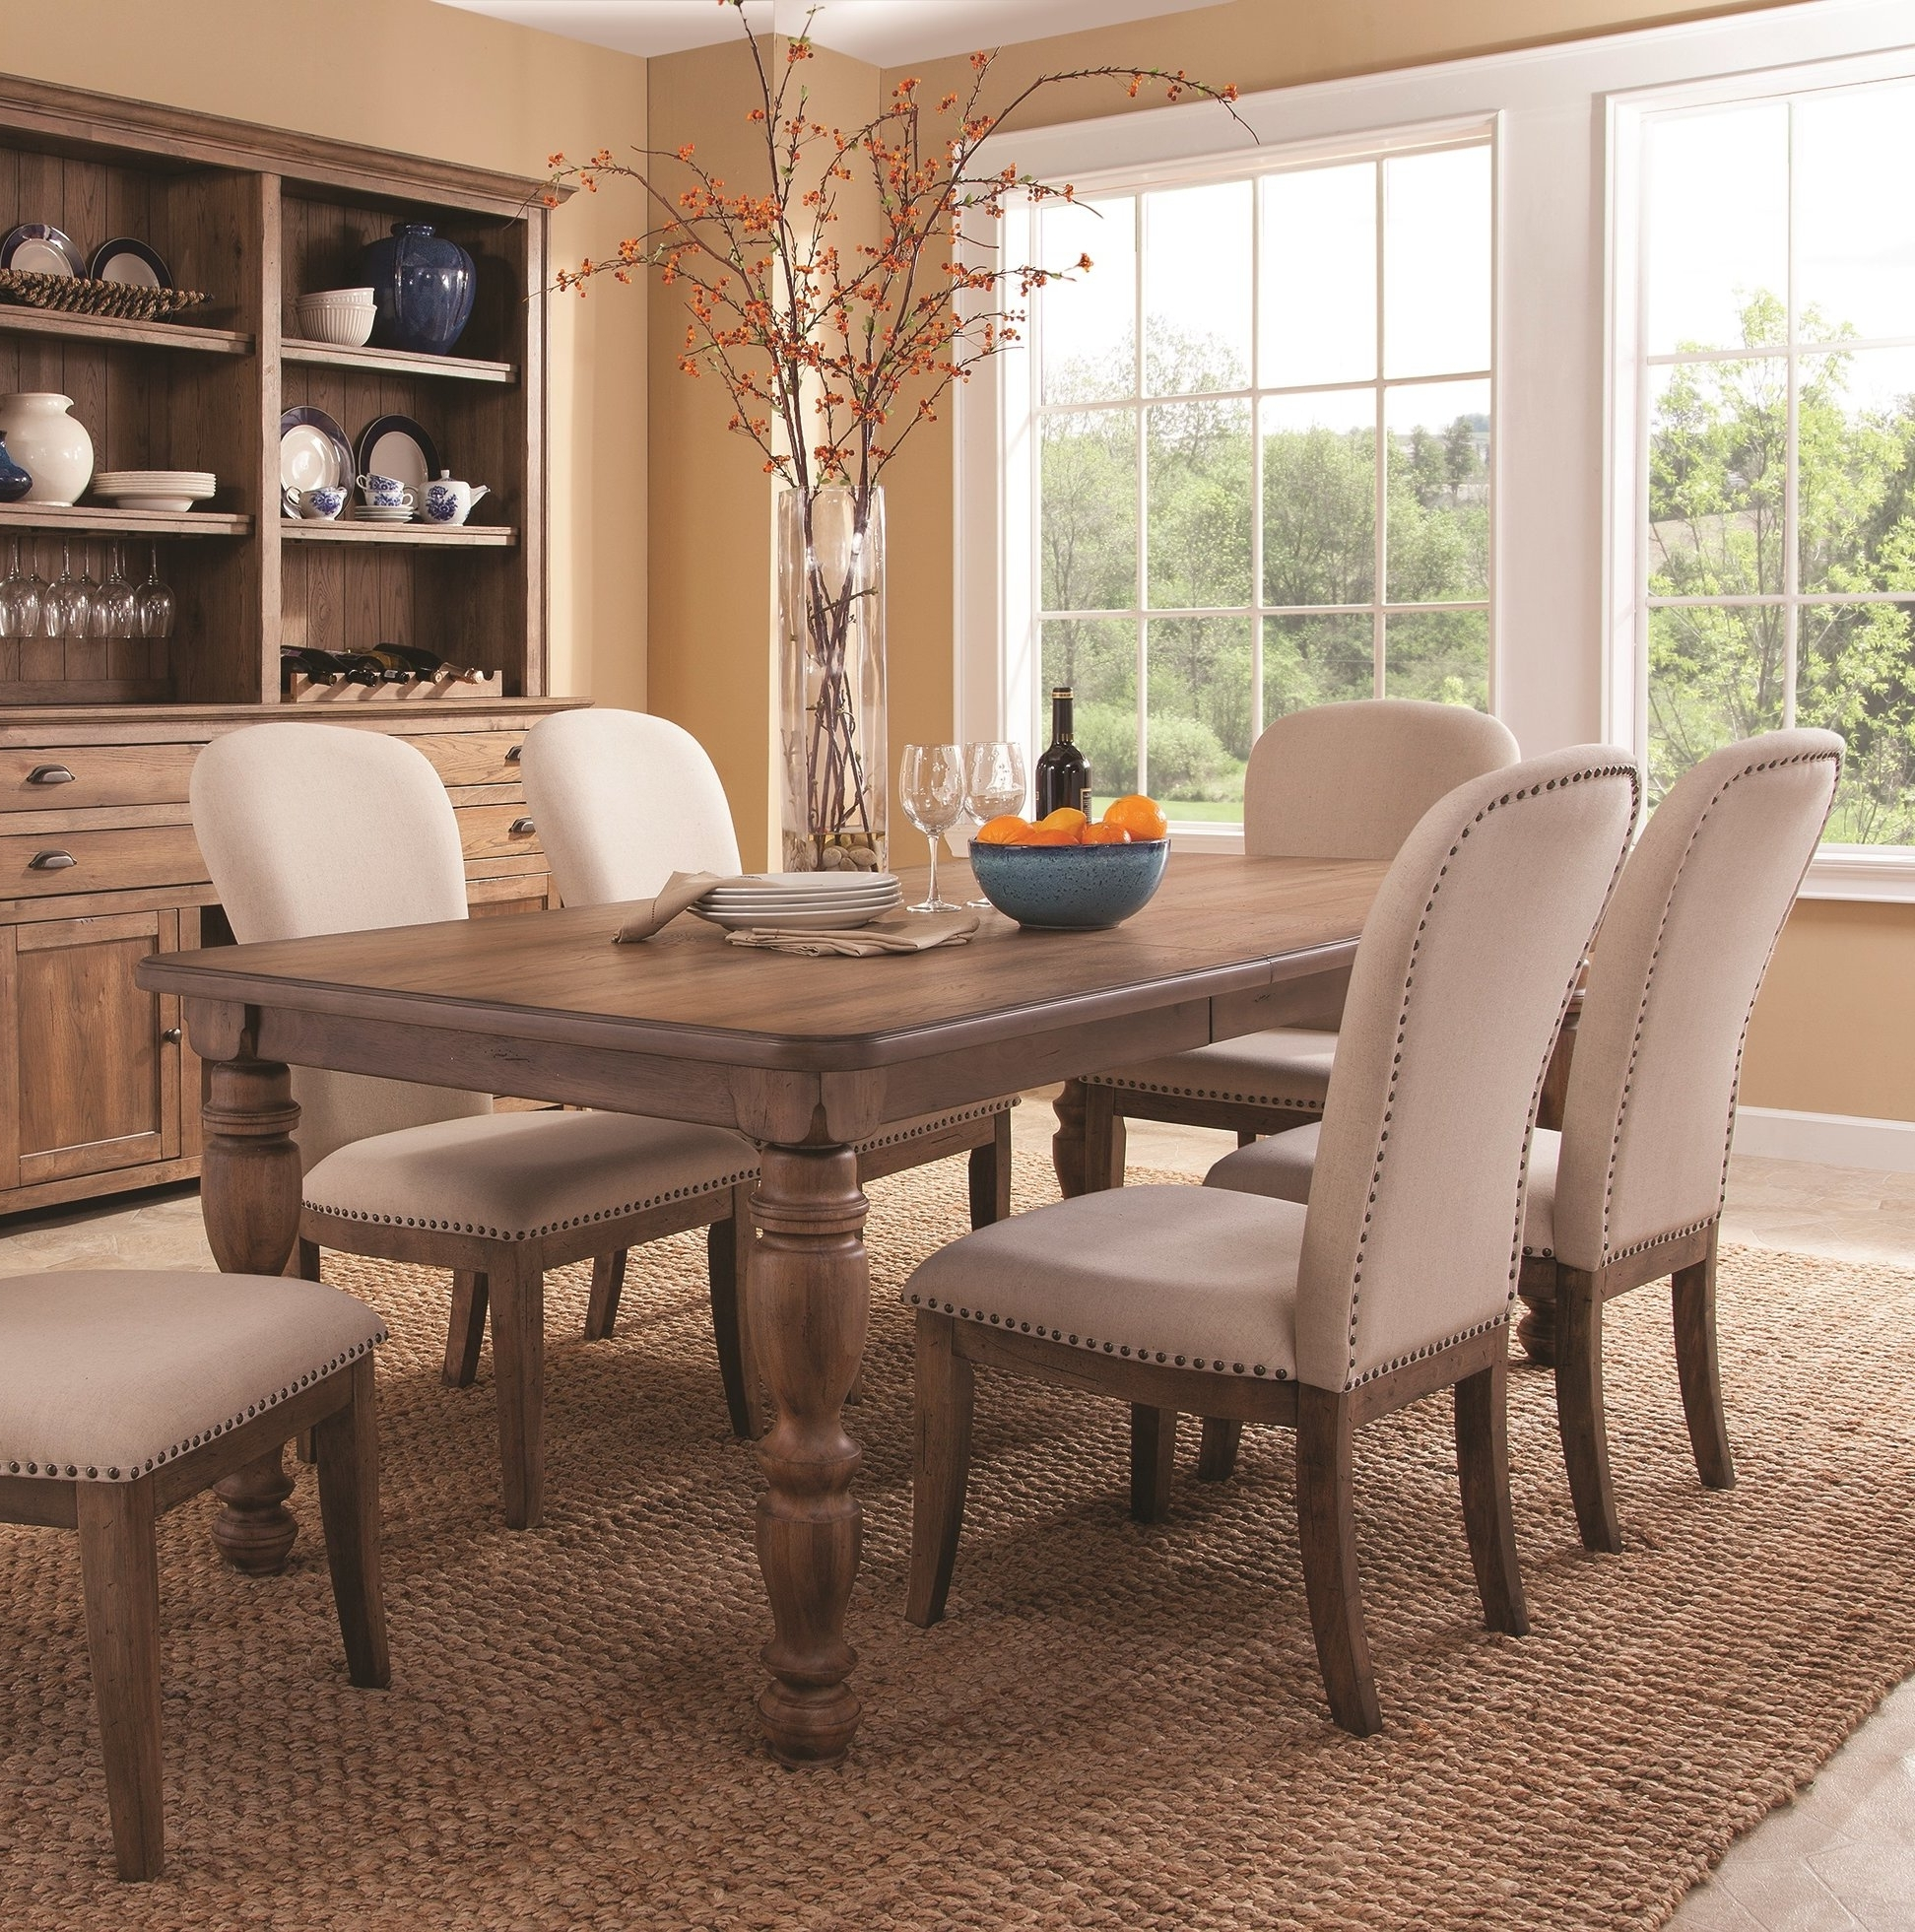 Extendable Dining Table Sets Regarding Latest Panama Jack South Mountain Farmhouse Extendable Dining Table Set (View 6 of 25)